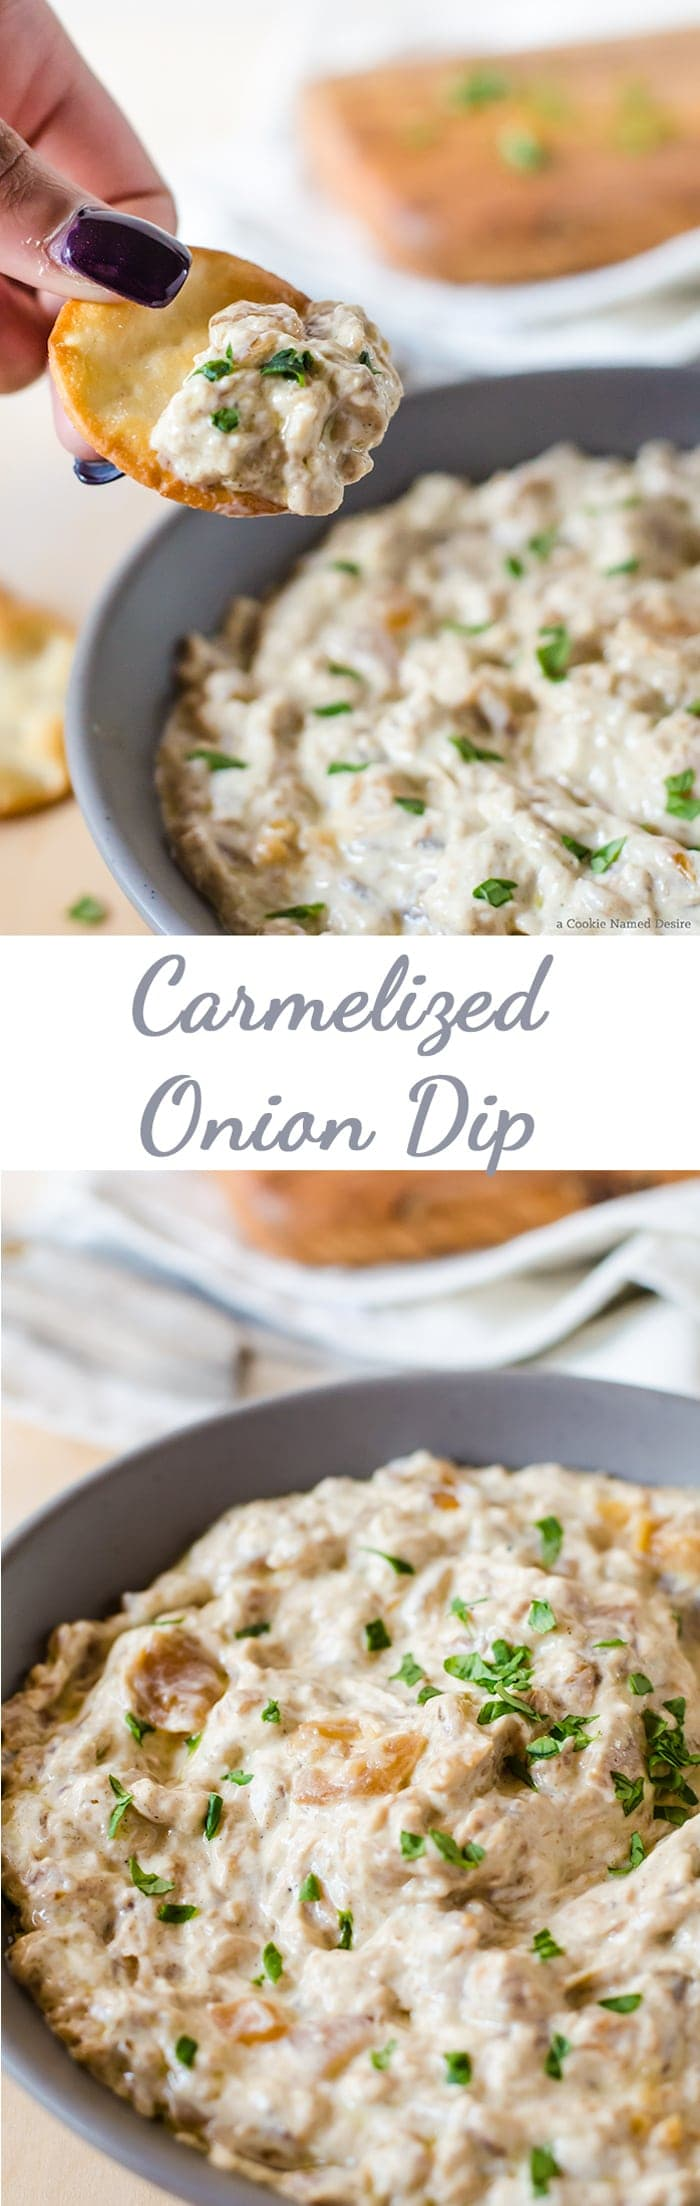 An easy caramelized onion dip recipe - perfect for snacking on at your next party!